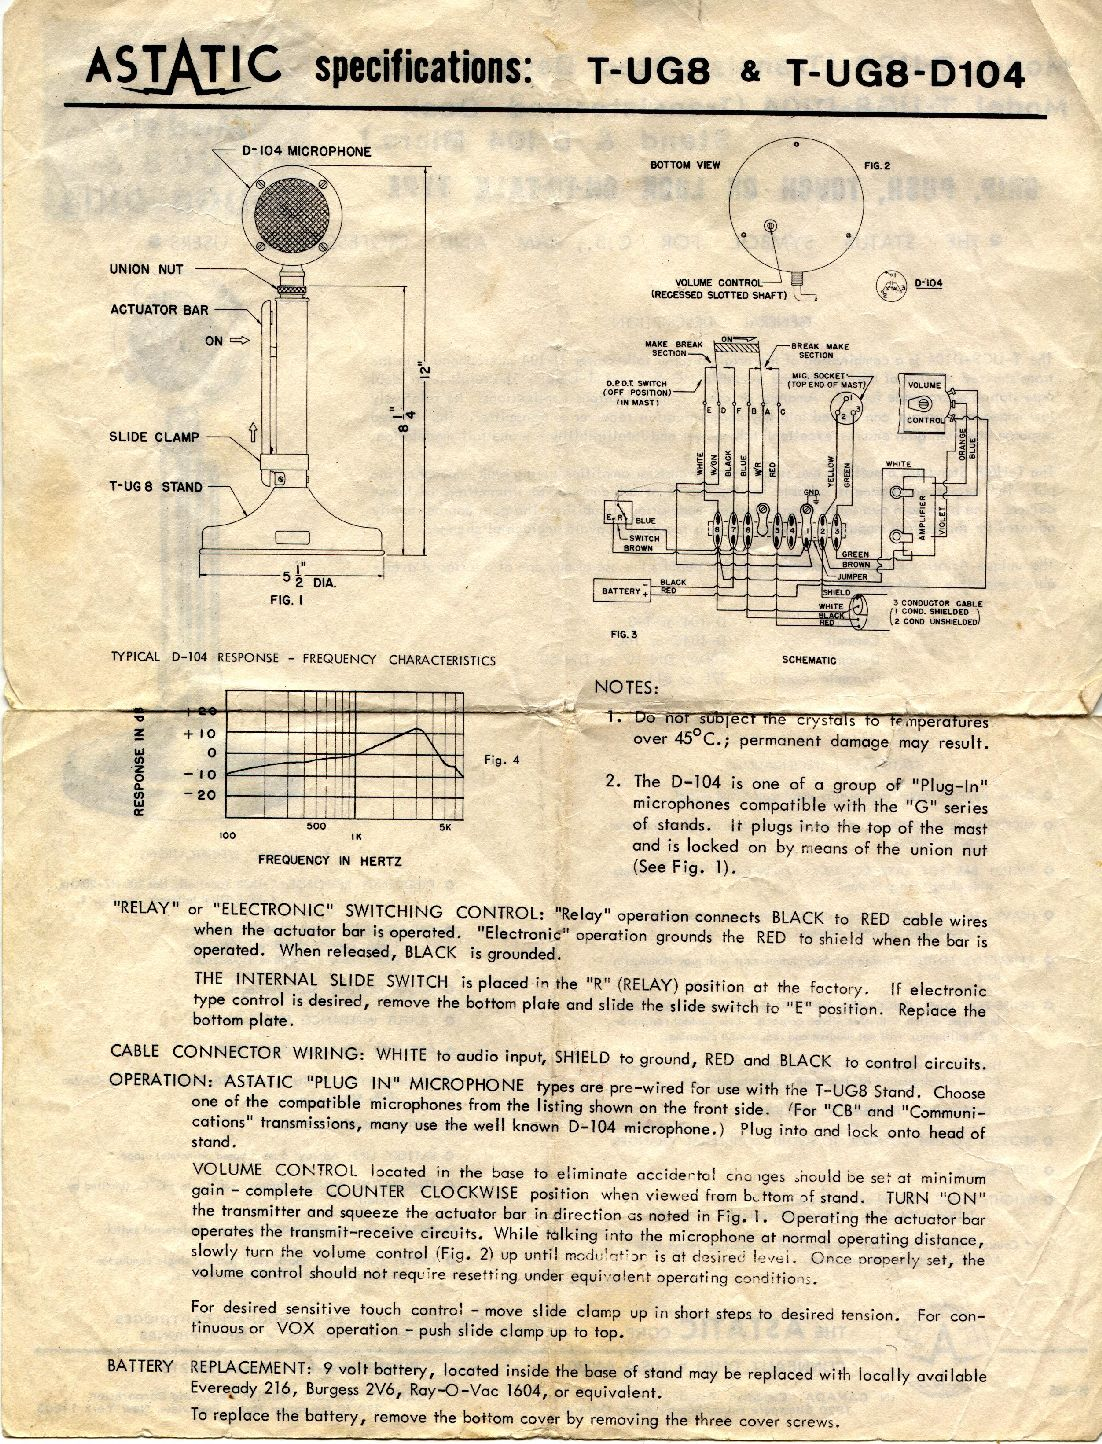 free download silver series wiring diagram astatic d 104 papers from 1977 #2